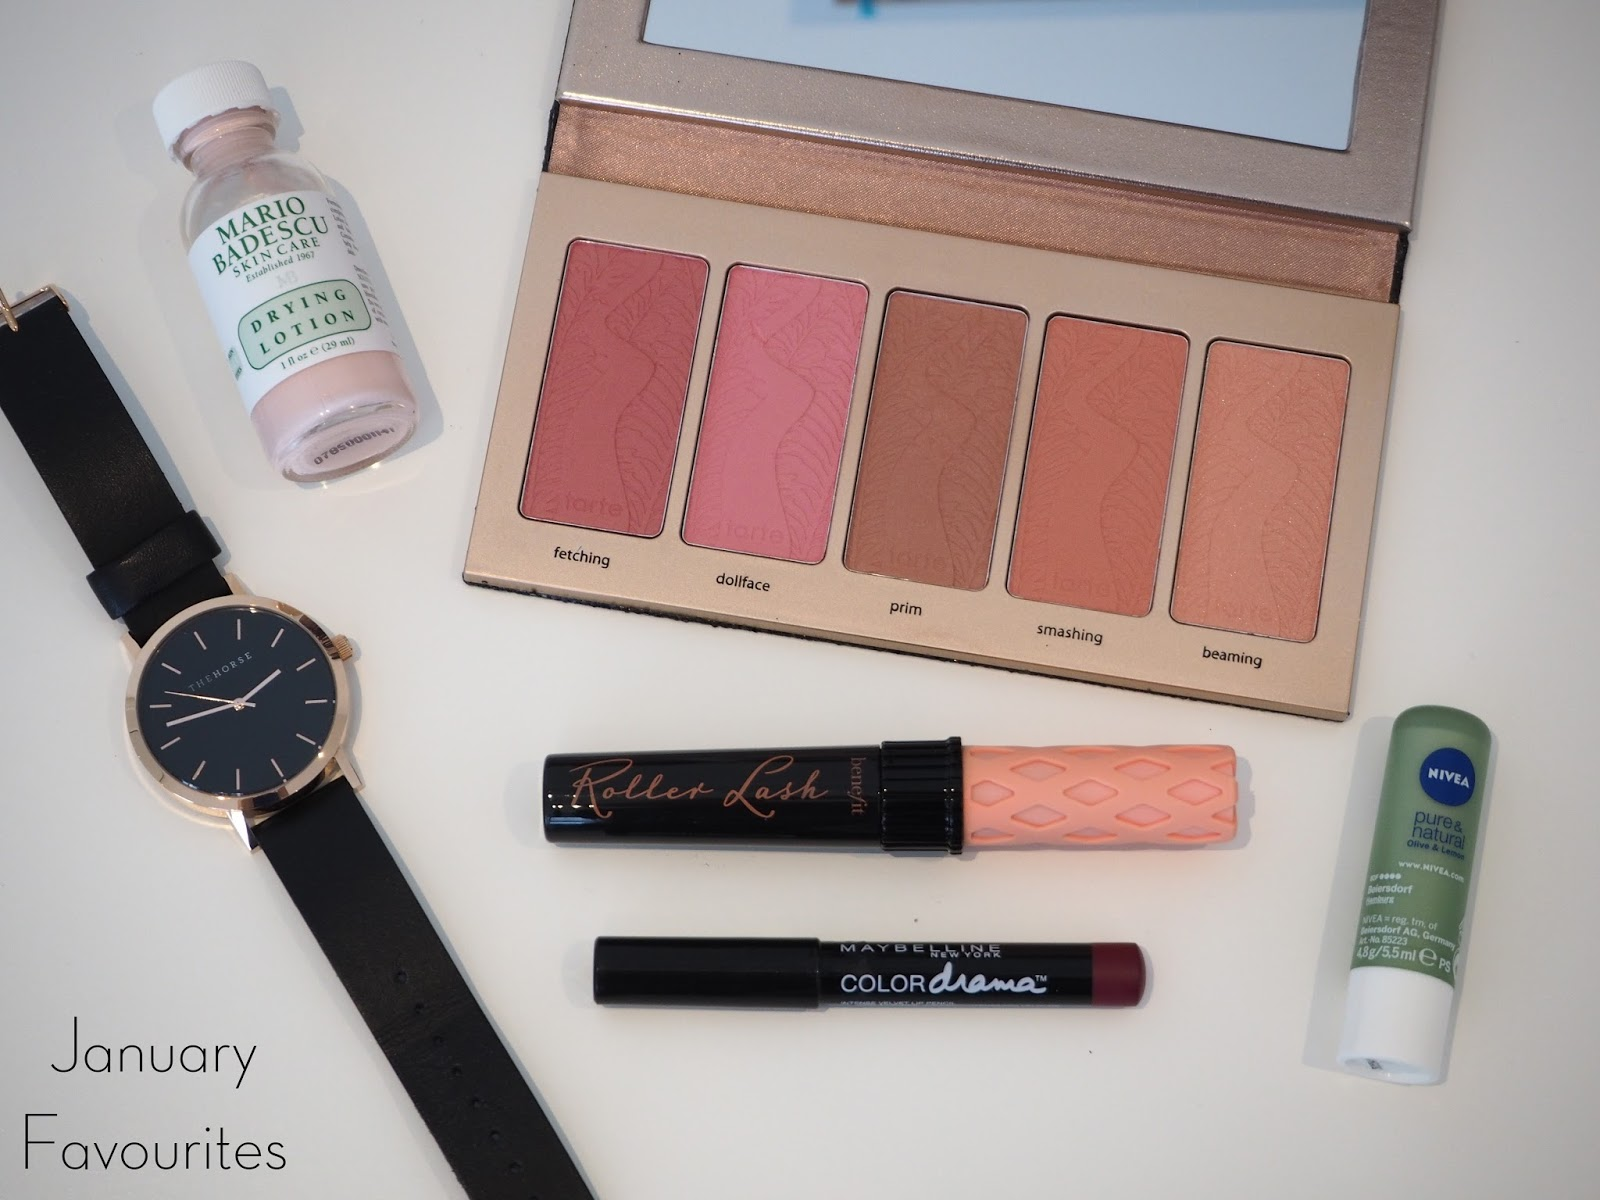 january favourites, january favorites, january makeup favourites, skincare favourites, favourite accessories, mario badescu drying lotion, tarte bling it on blush palette, the horse watch, benefit roller lash, maybelling color drama lip pencil berry much, nivea olive and lemon lip balm